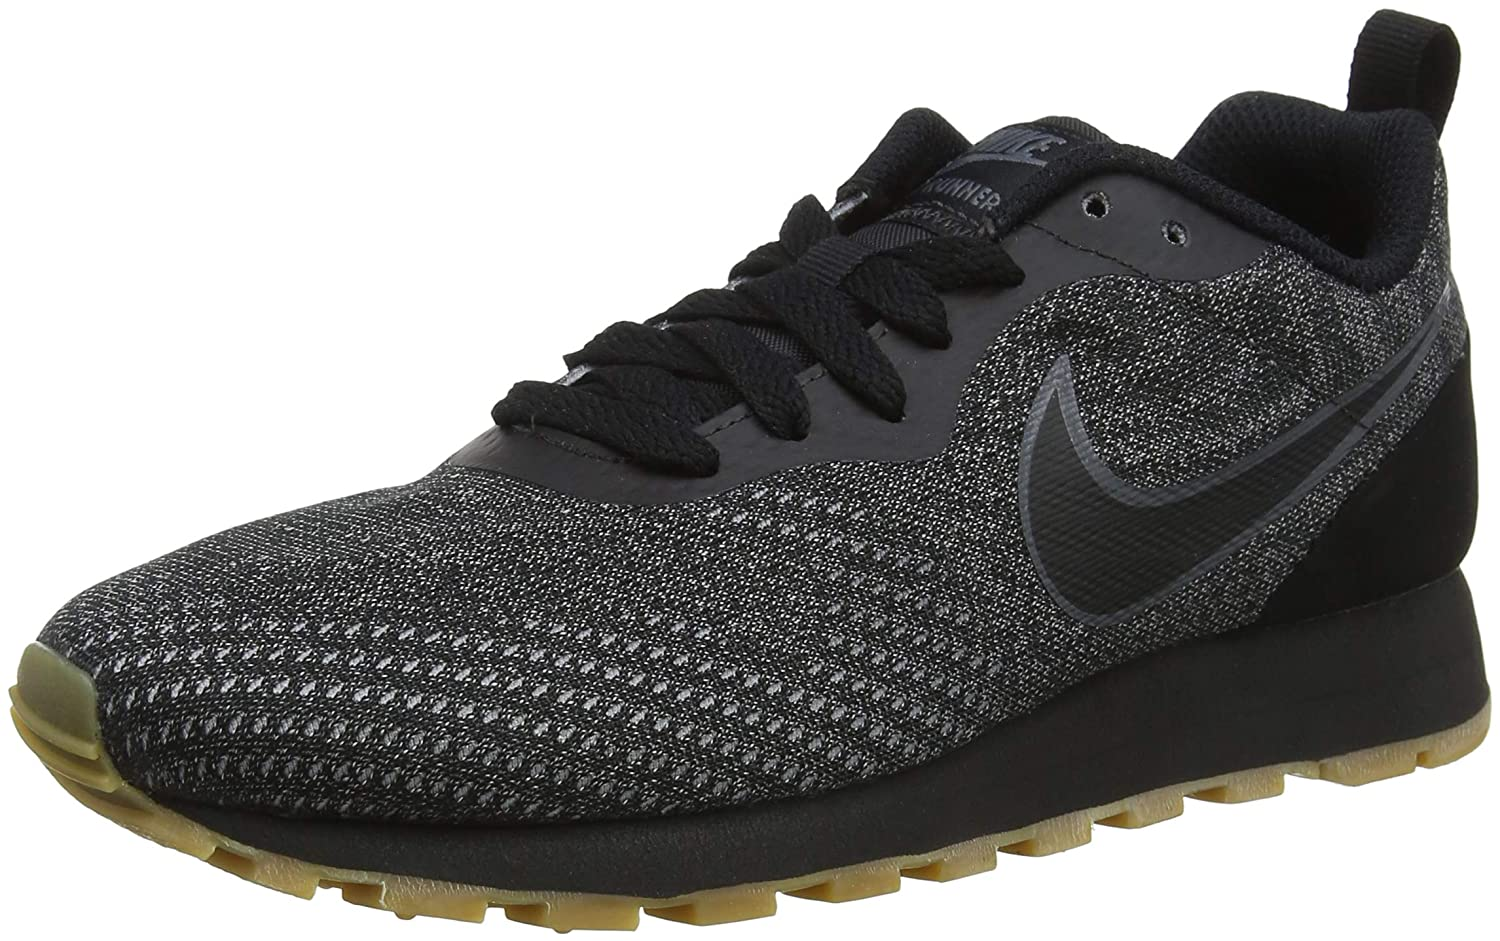 NIKE Womens WMNS Md Runner 2 Eng Mesh Fitness Shoes